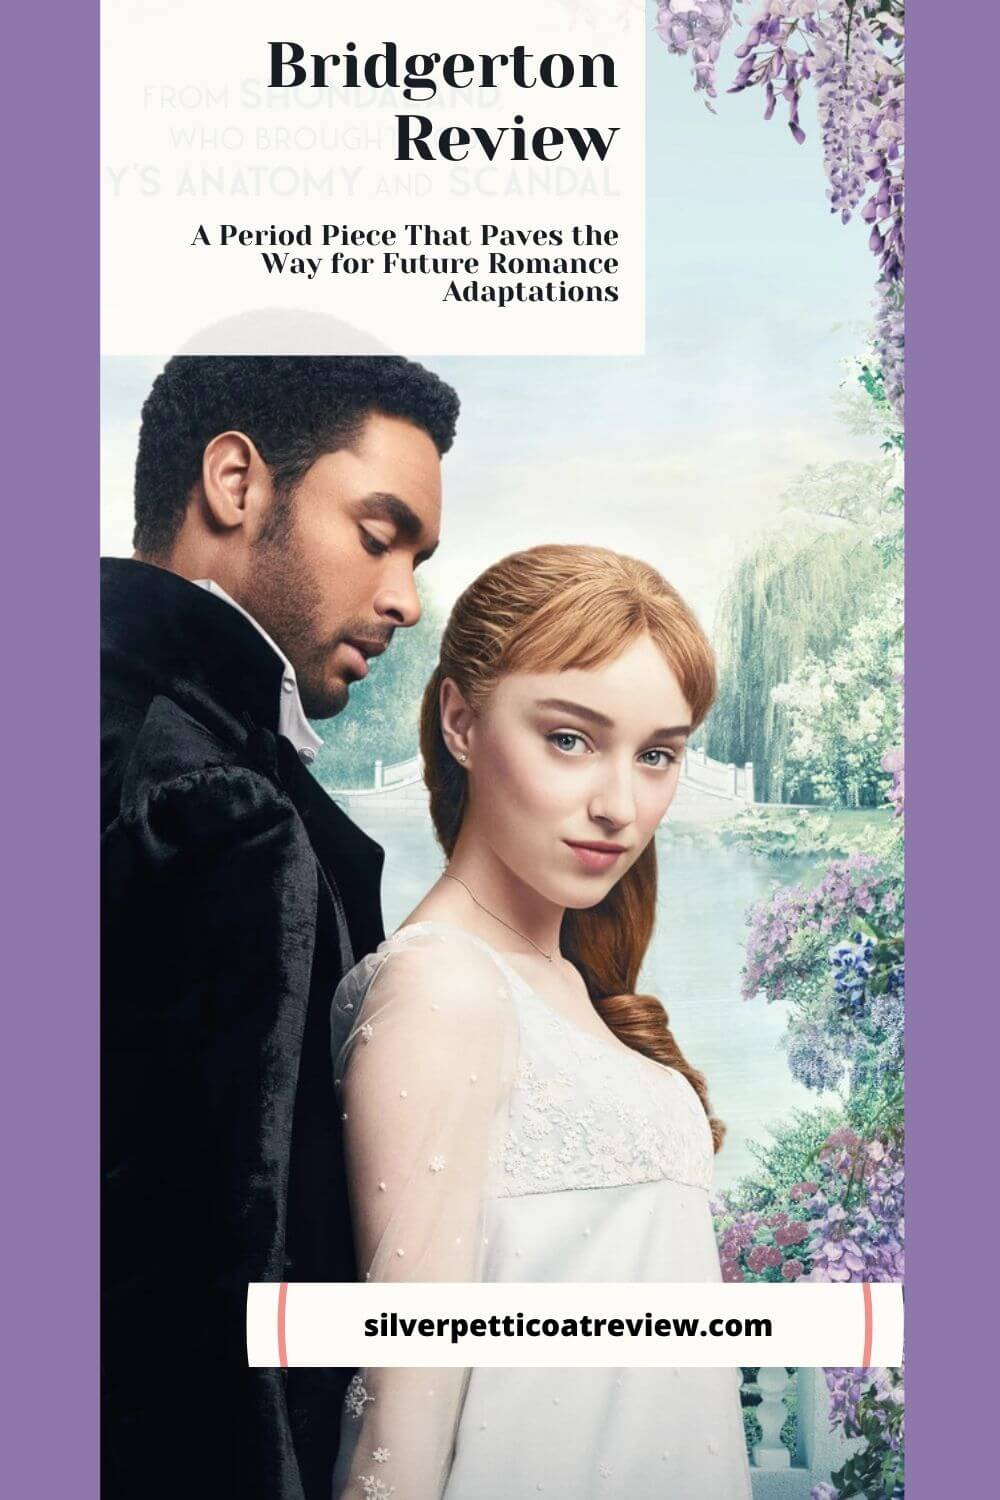 Bridgerton Review; pinterest image with Simon and Daphne